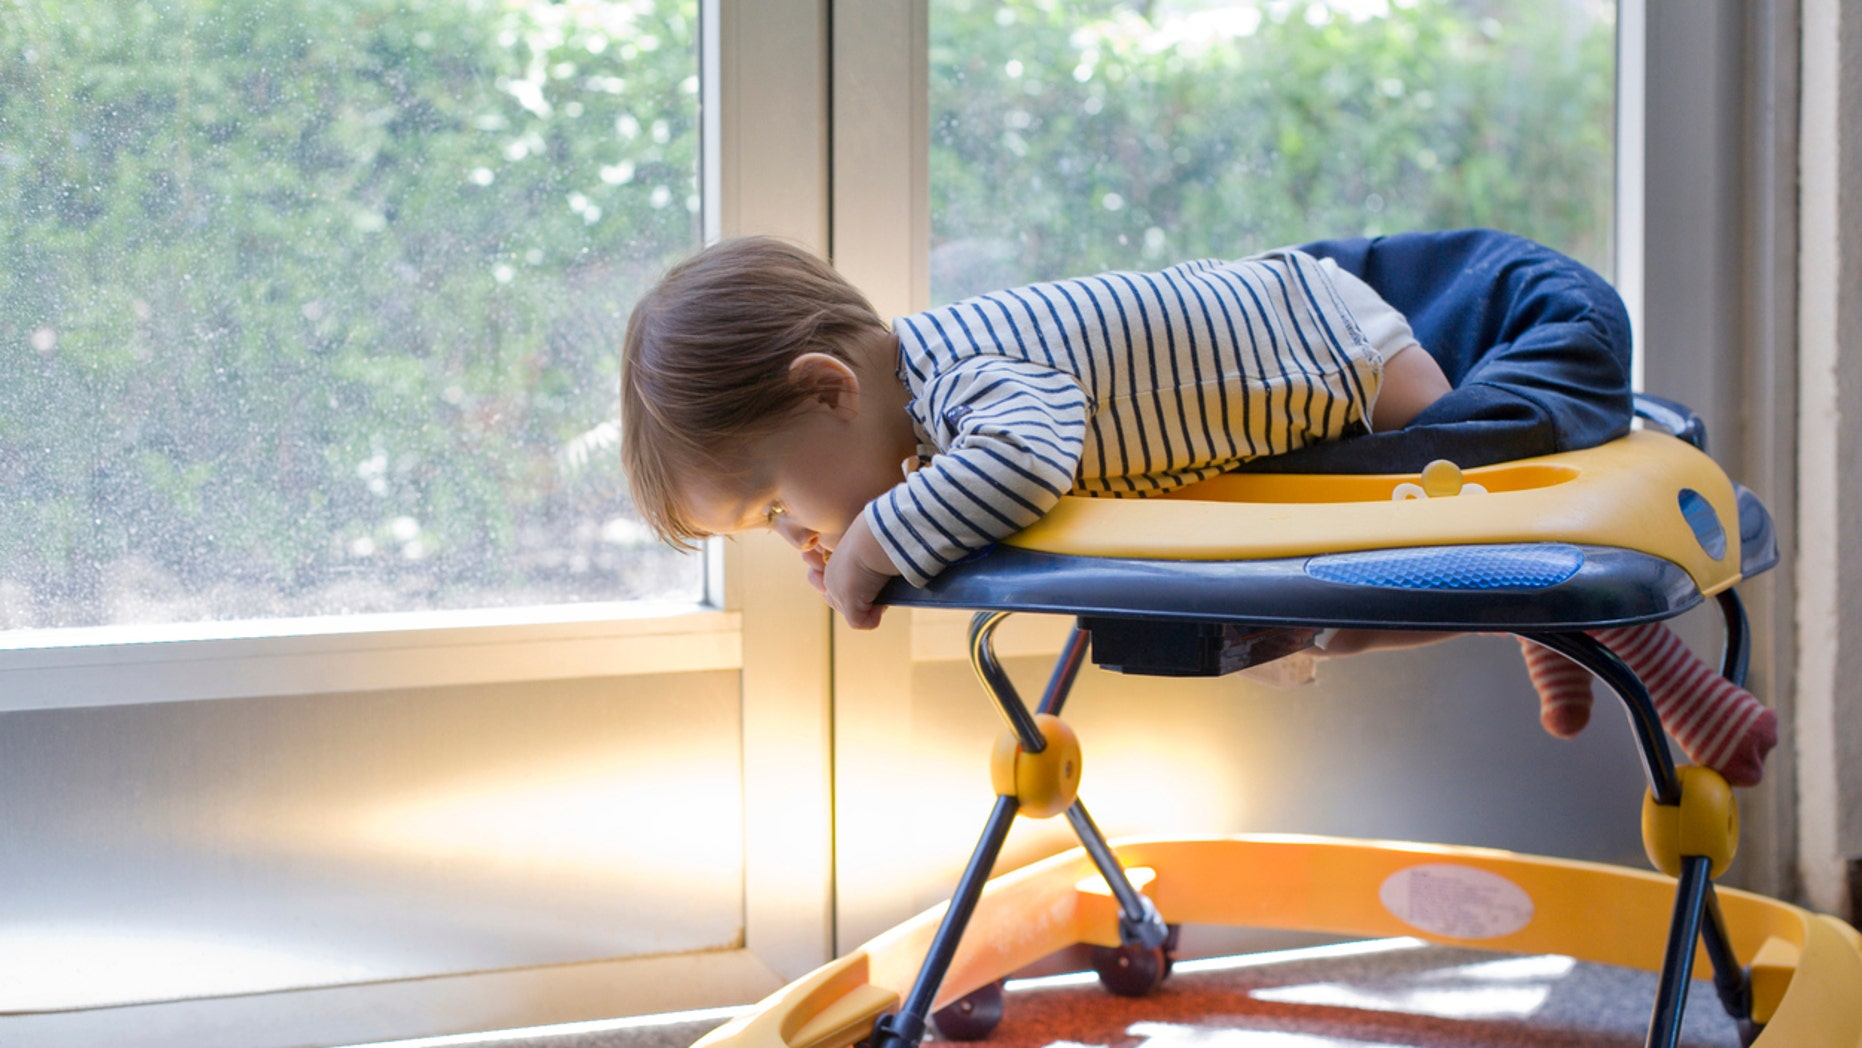 85f8b5a2af95 Doctors push ban on baby walkers